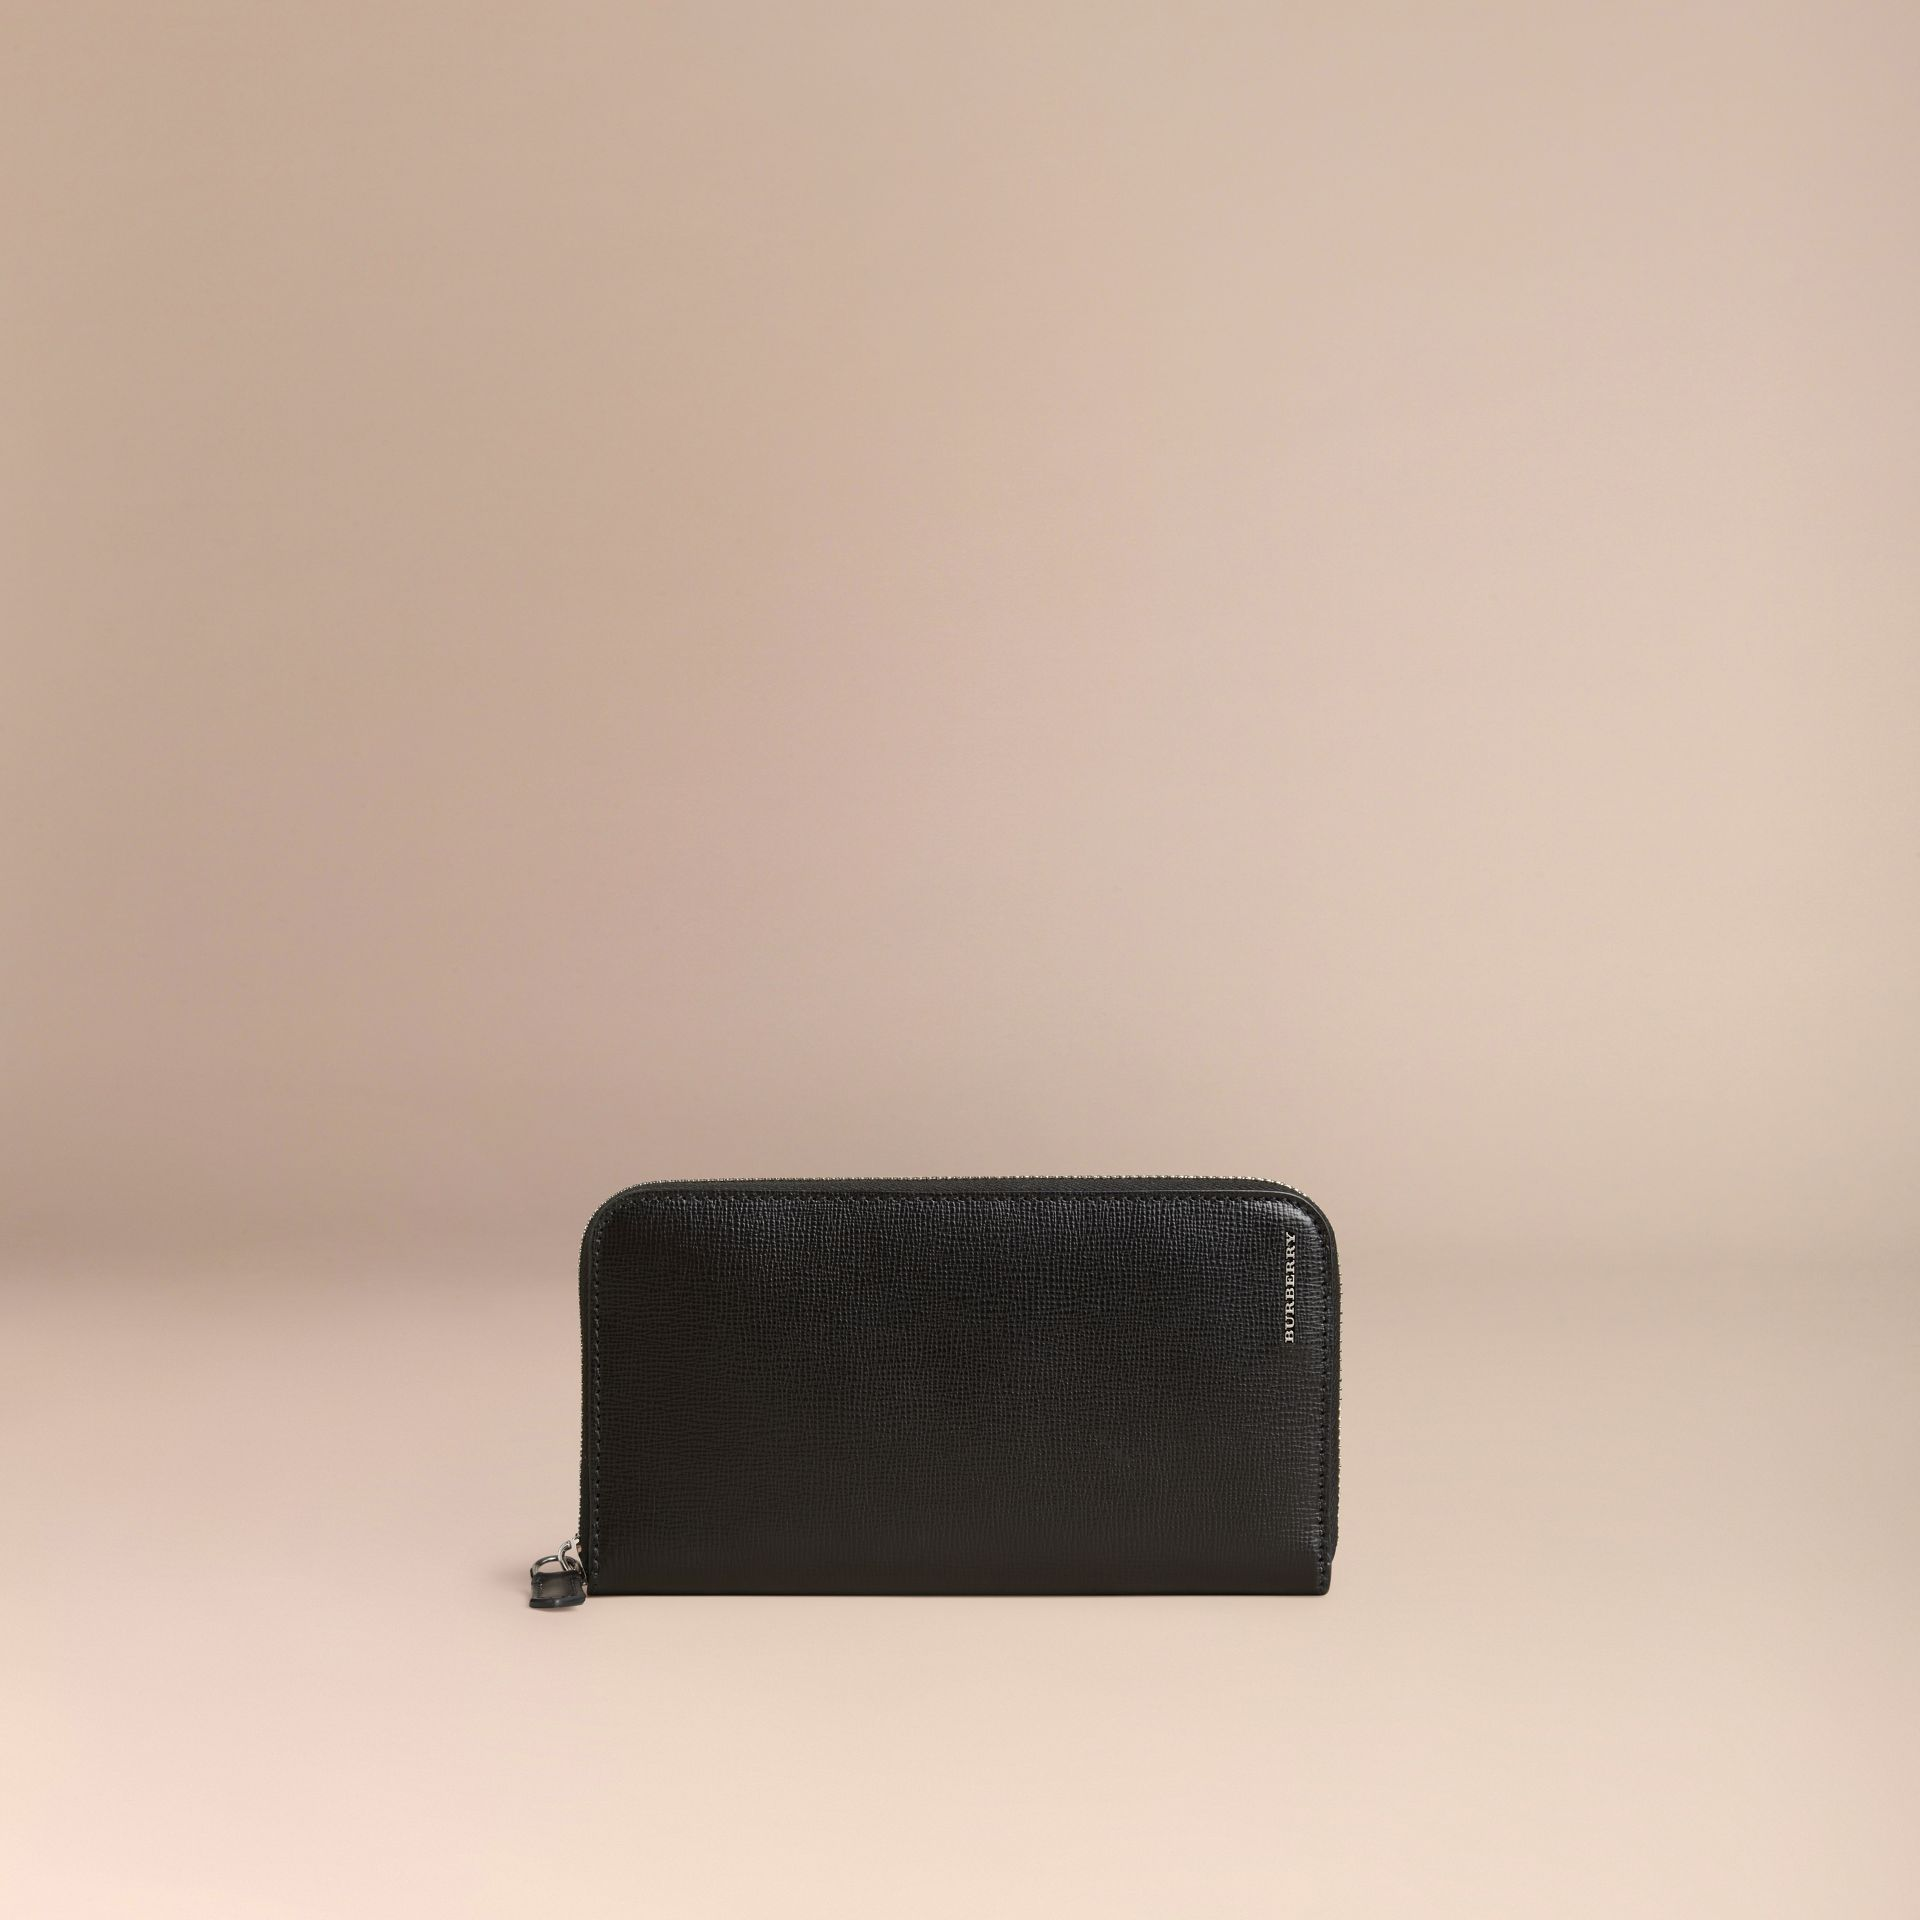 London Leather Ziparound Wallet Black - gallery image 3